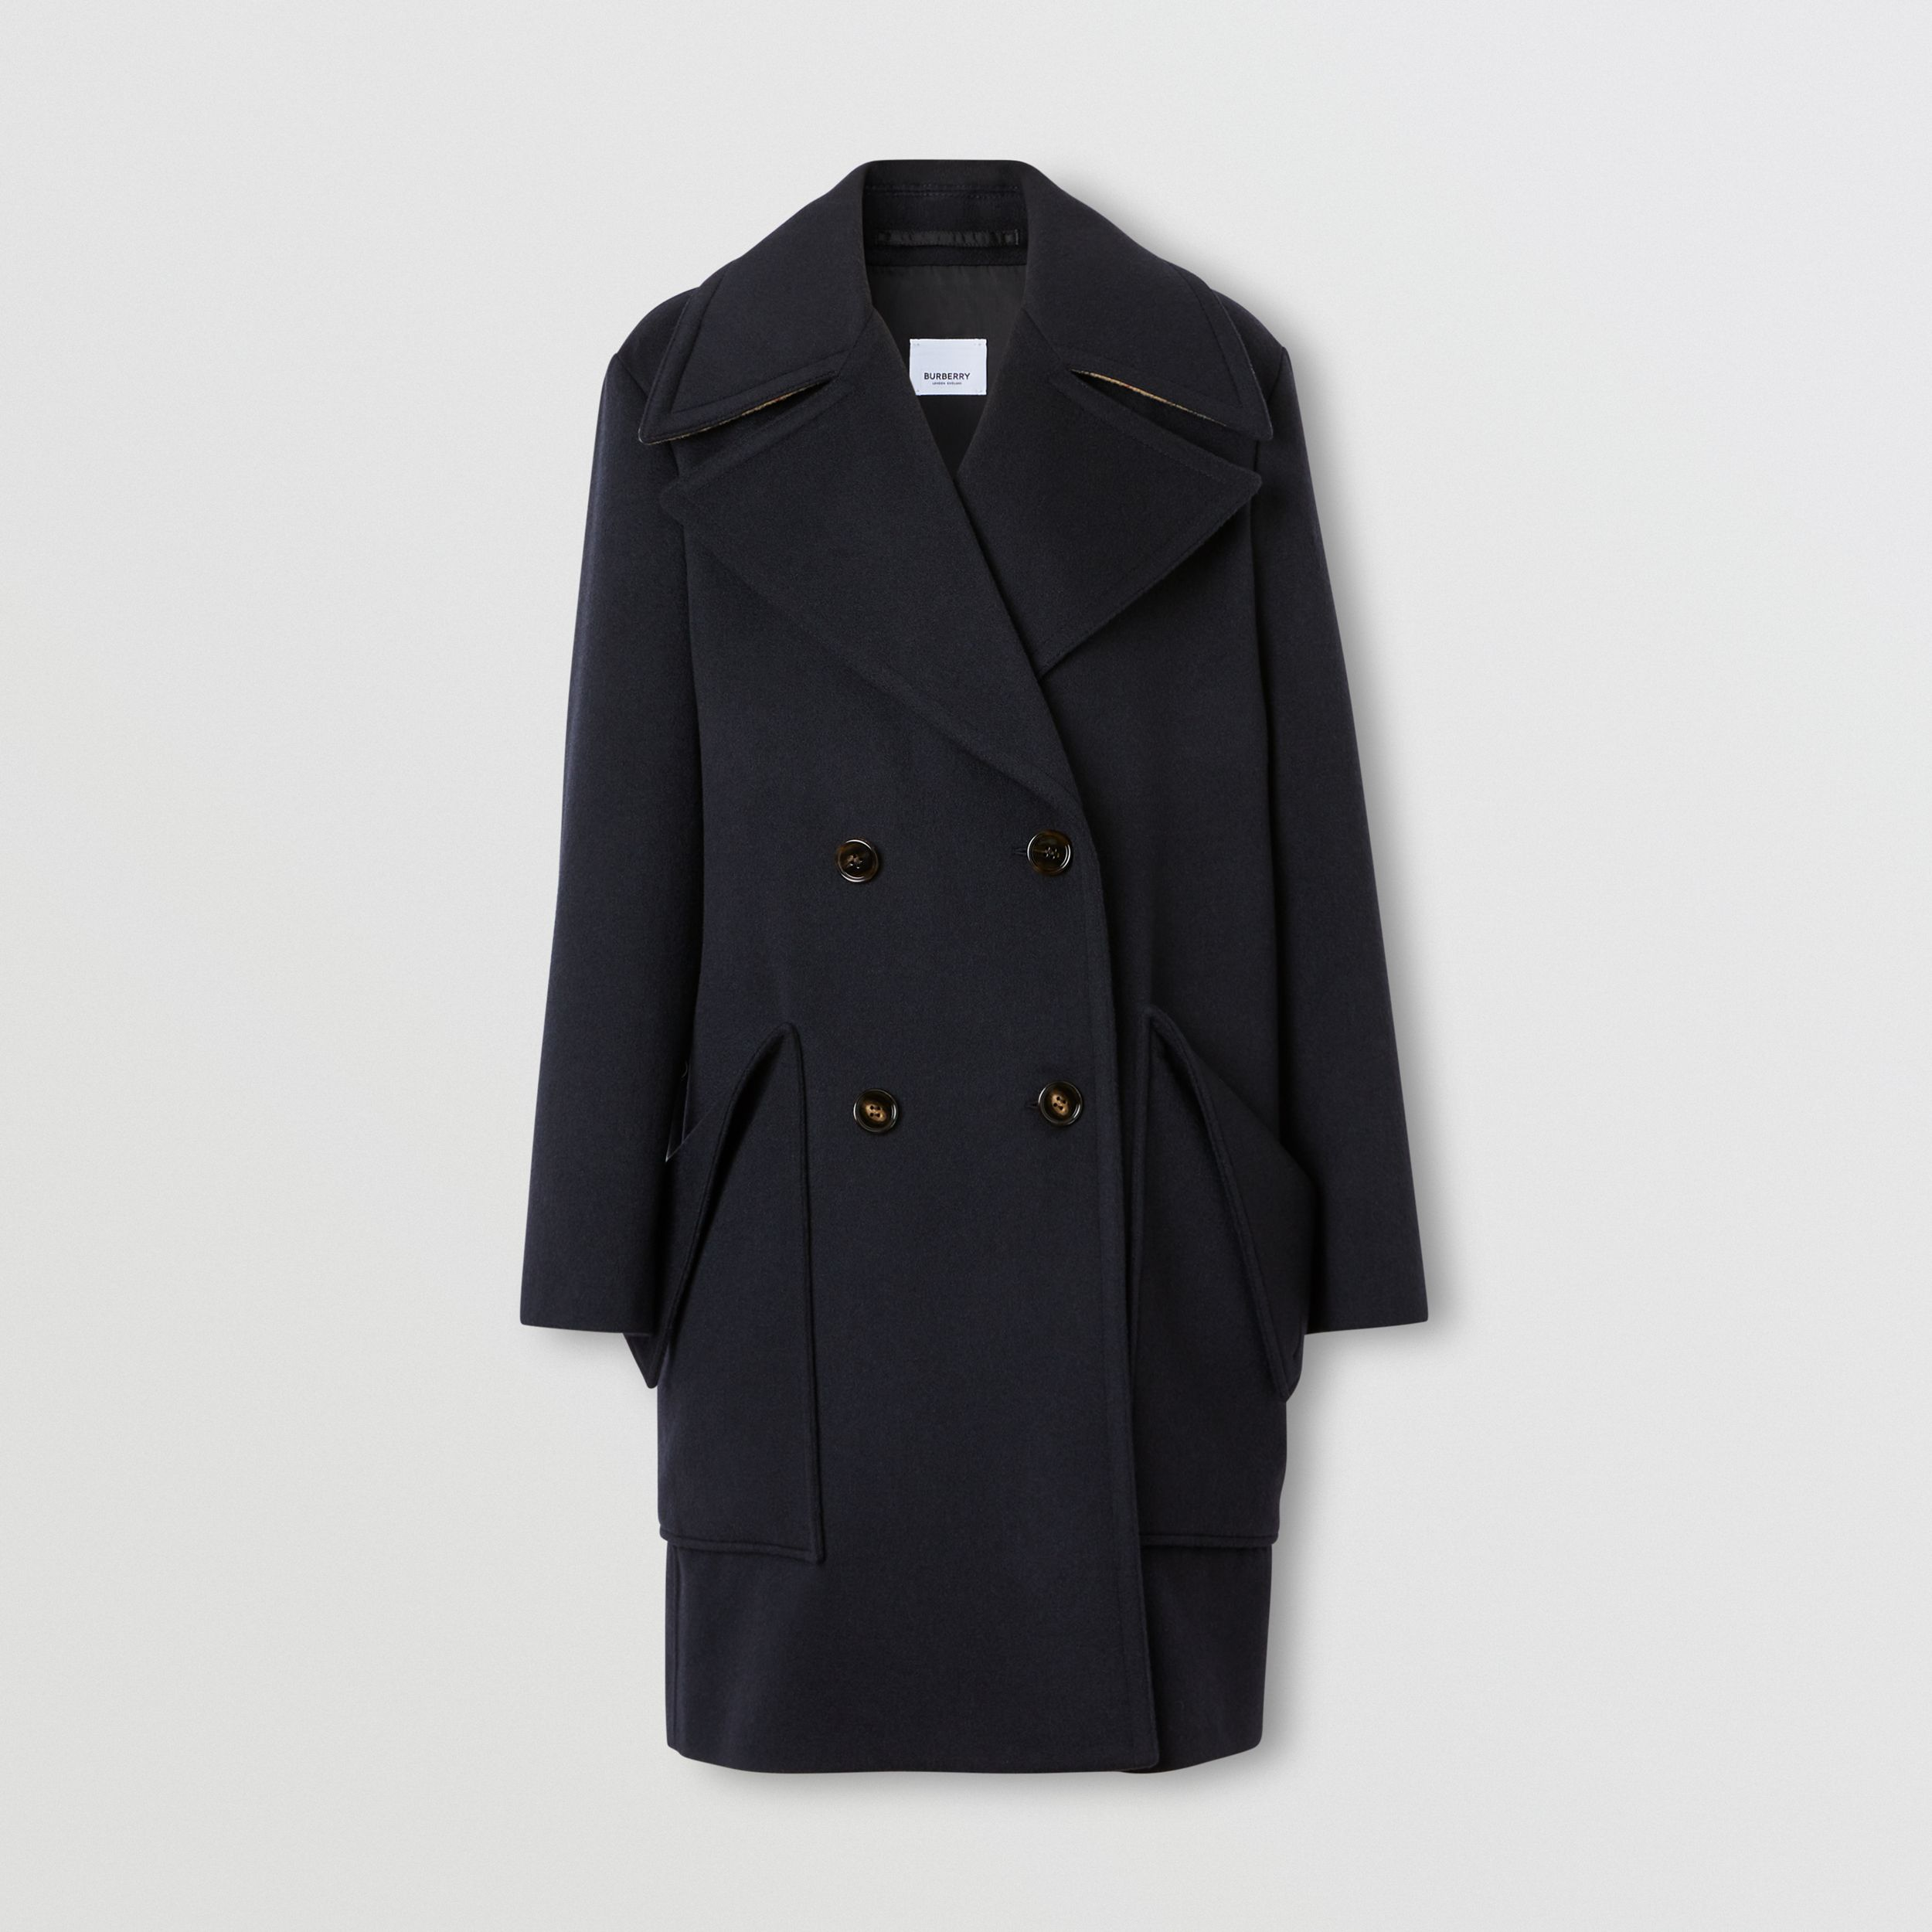 Pocket Detail Cashmere Pea Coat in Navy - Women | Burberry Australia - 4